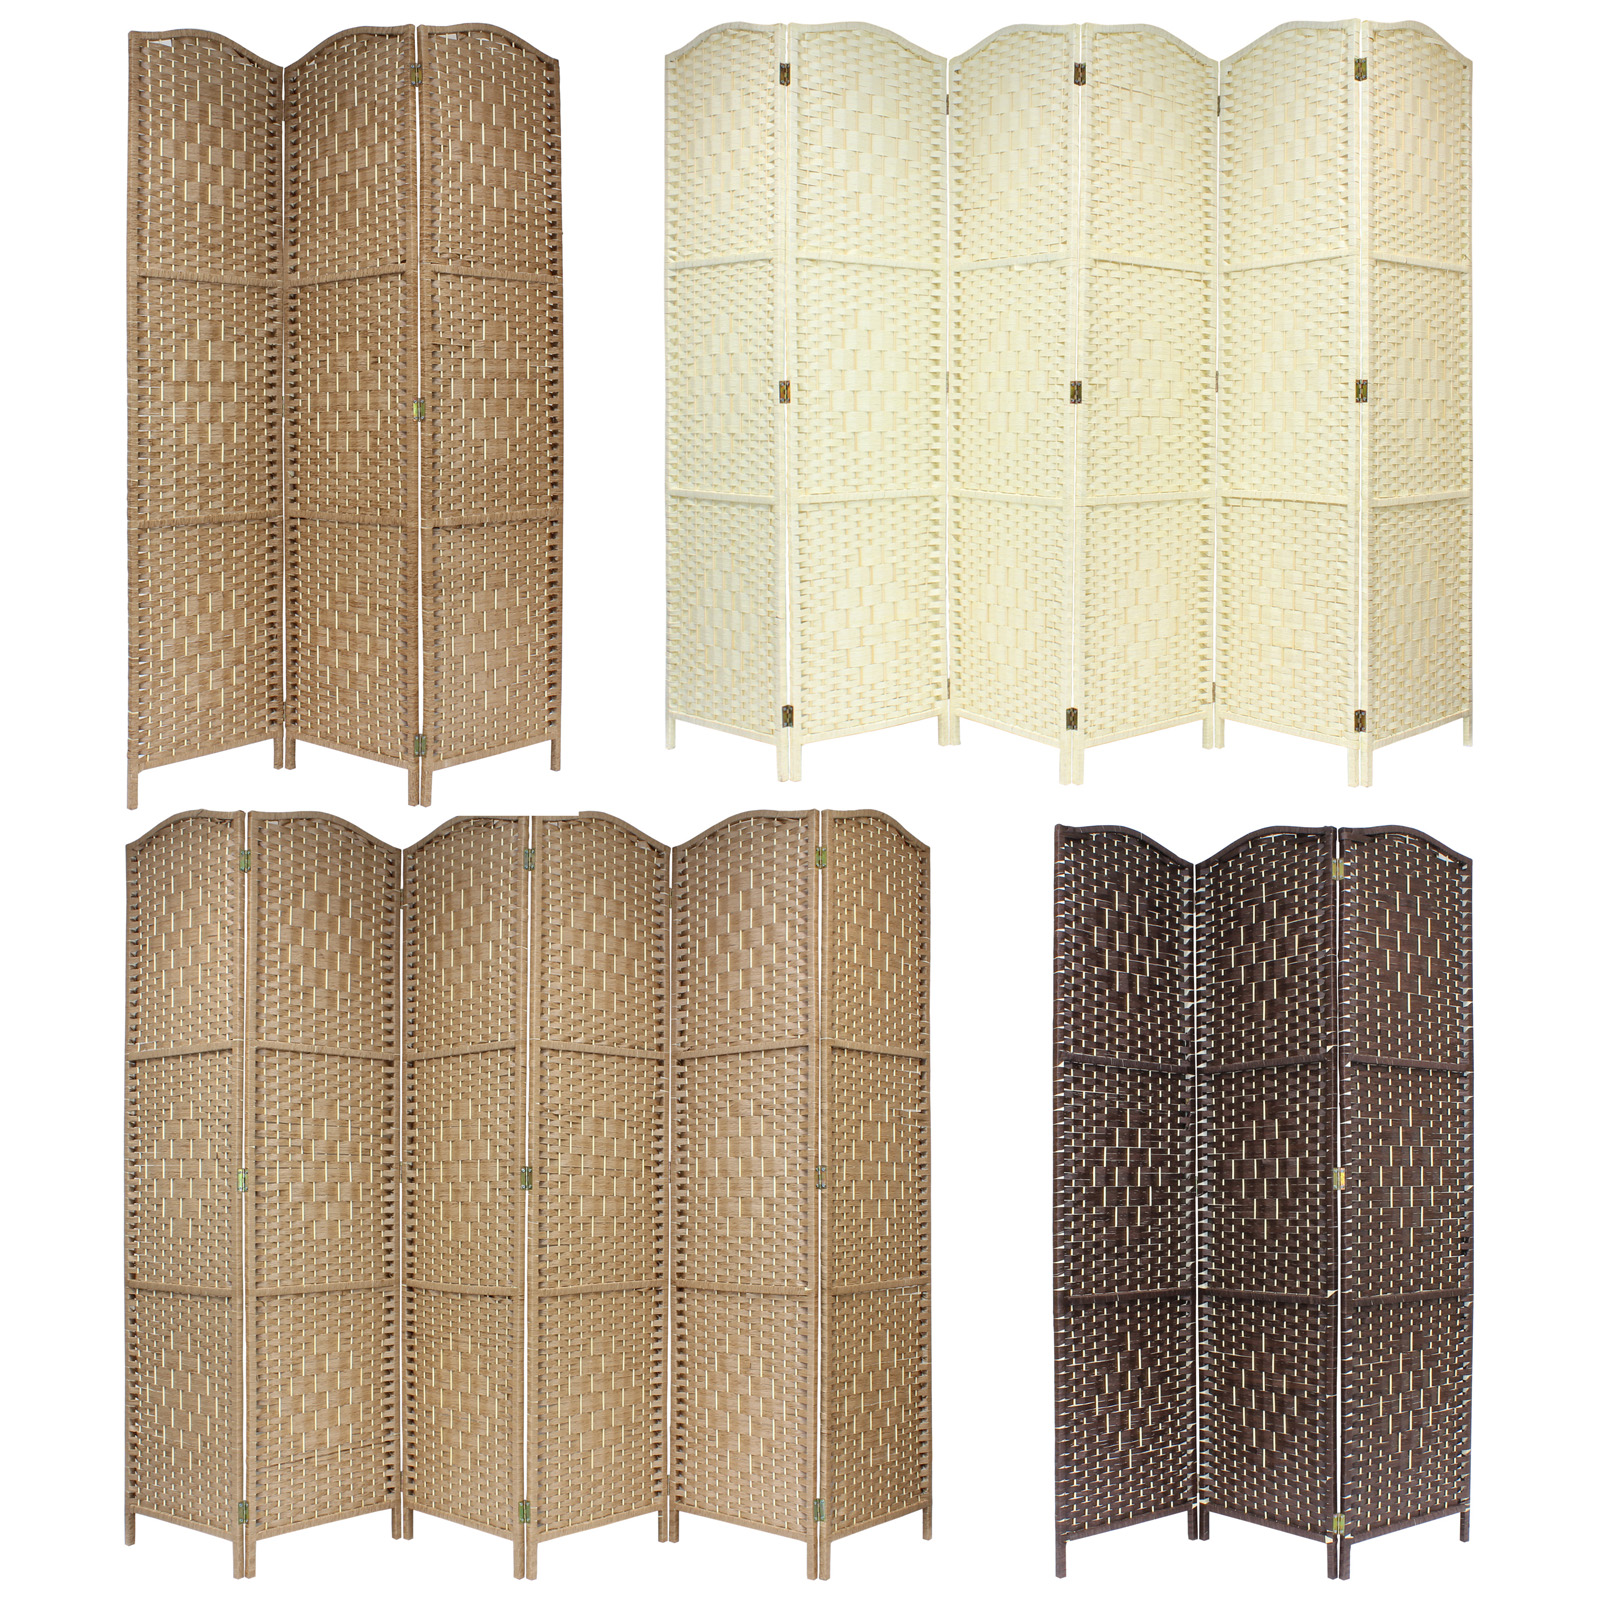 solid weave hand made wicker folding room divider screen panel